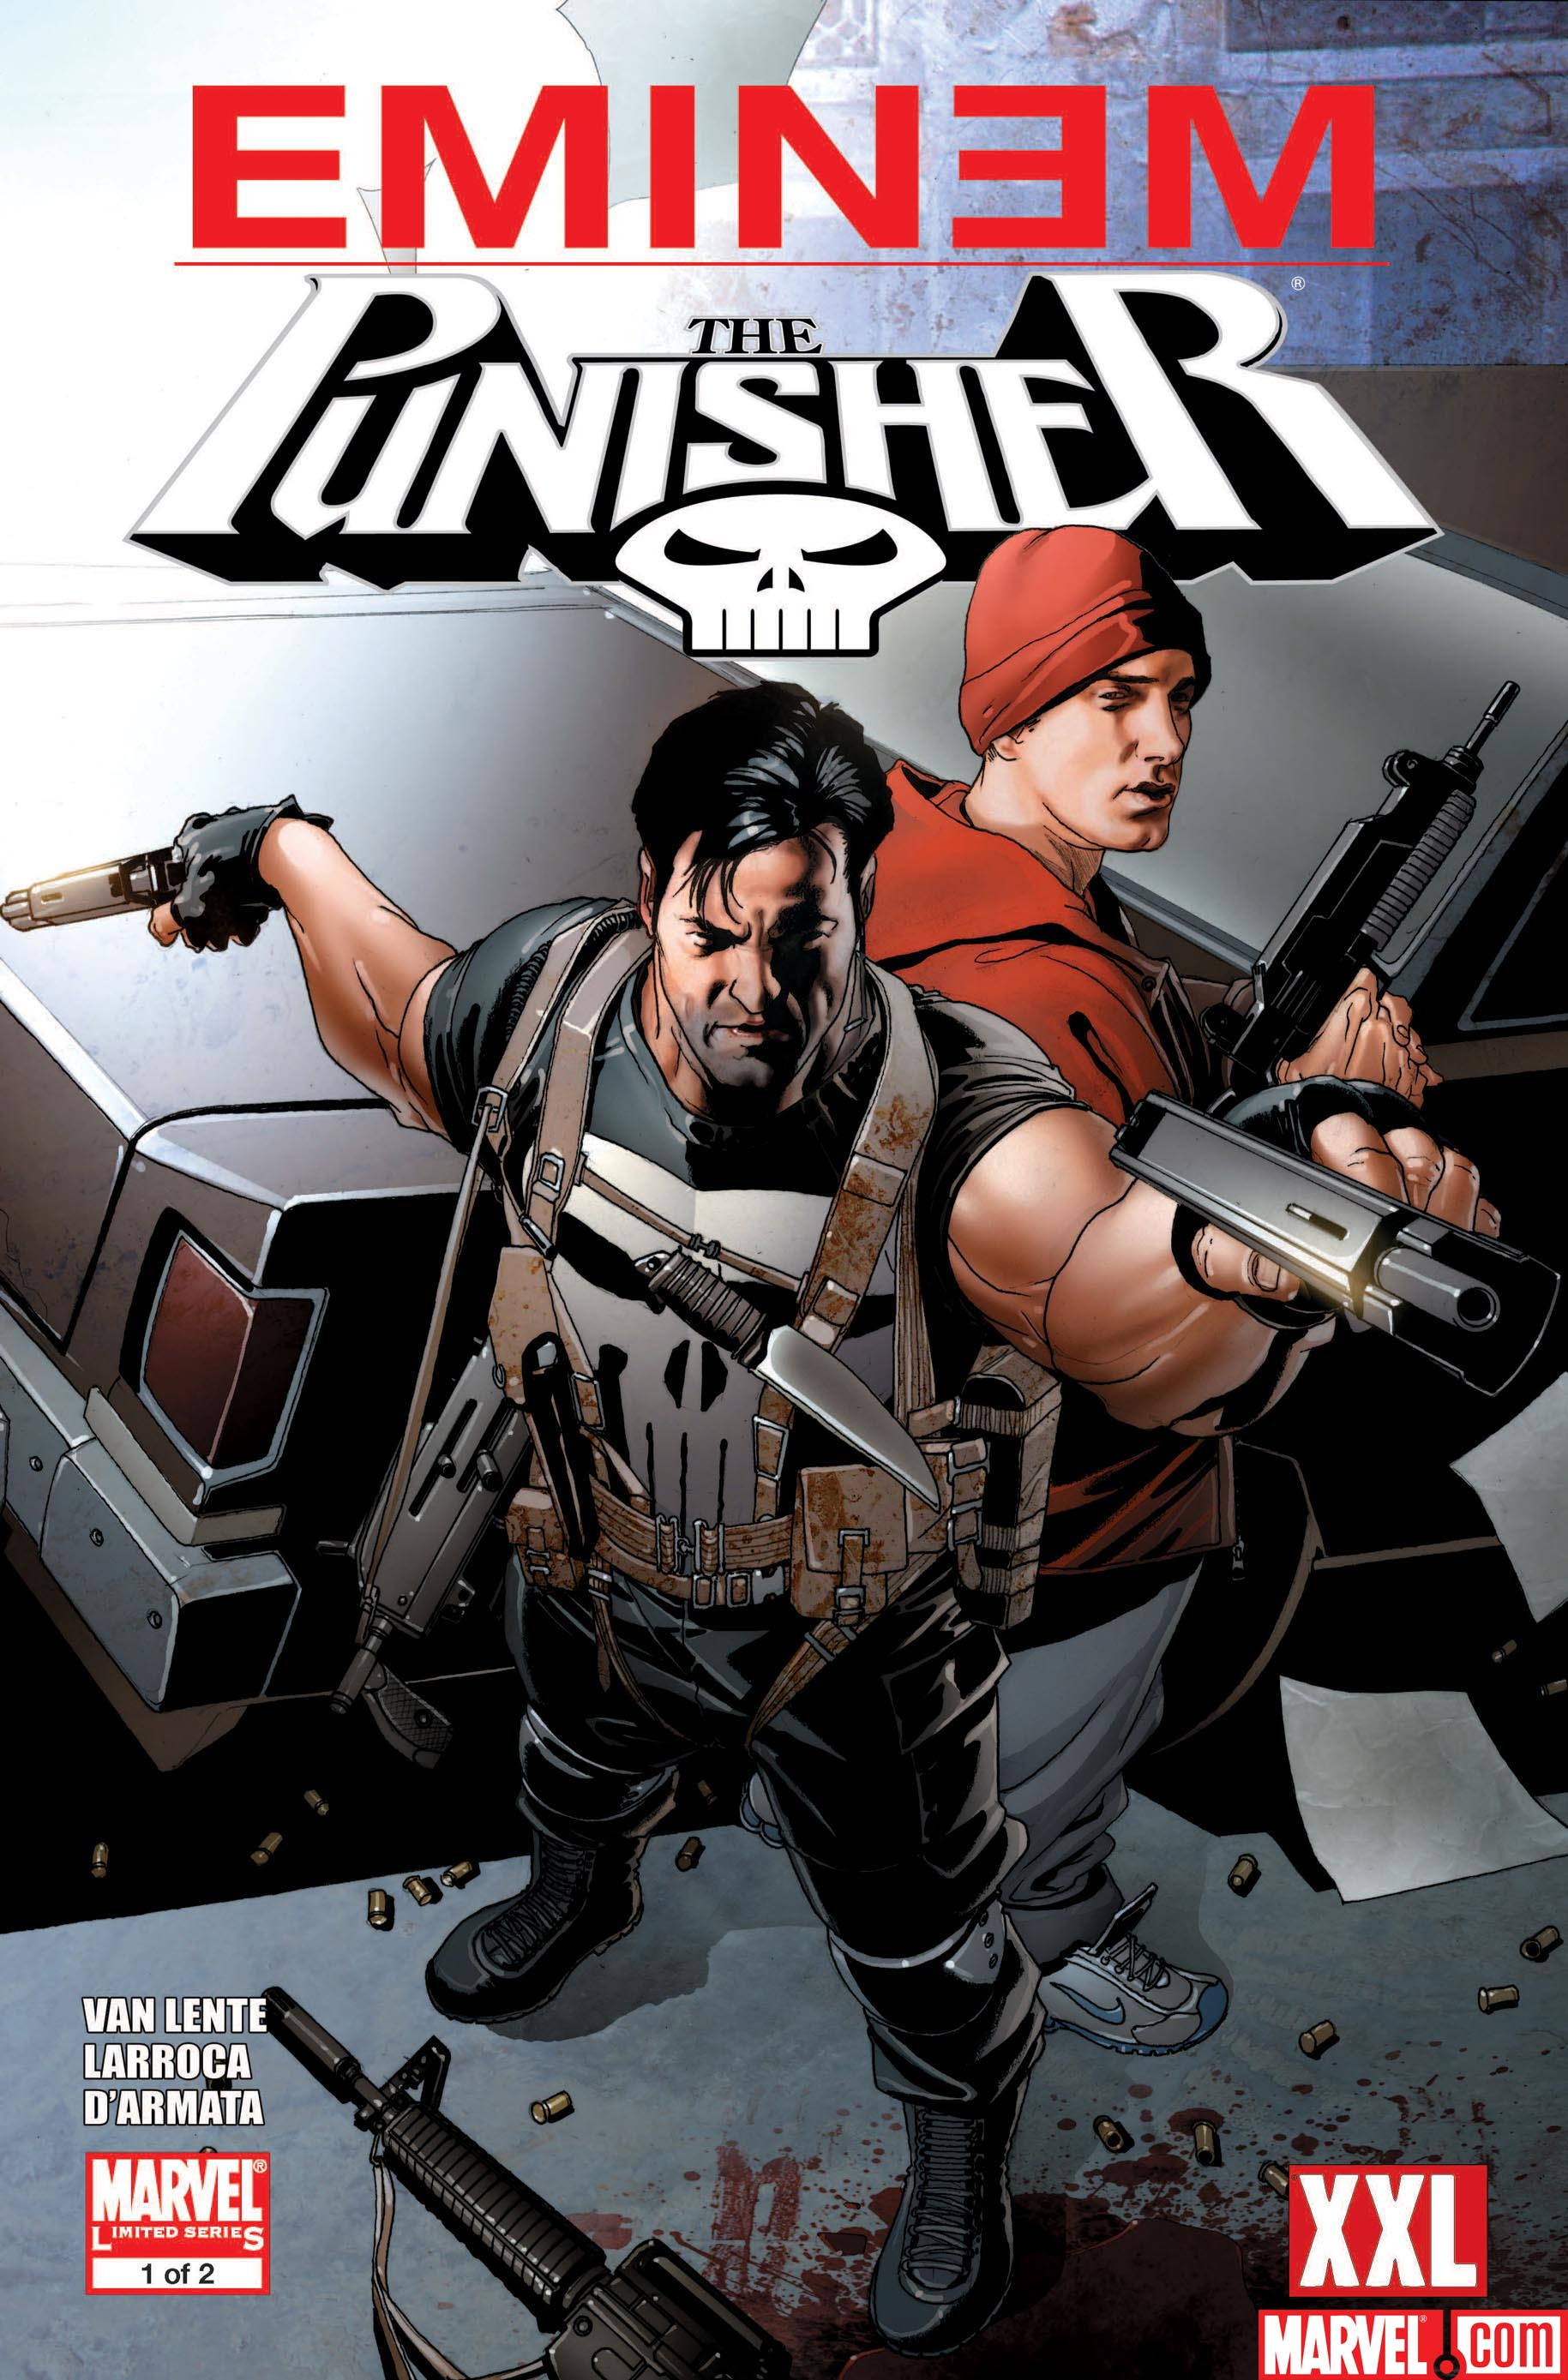 marvel presents special punisher story in collaboration